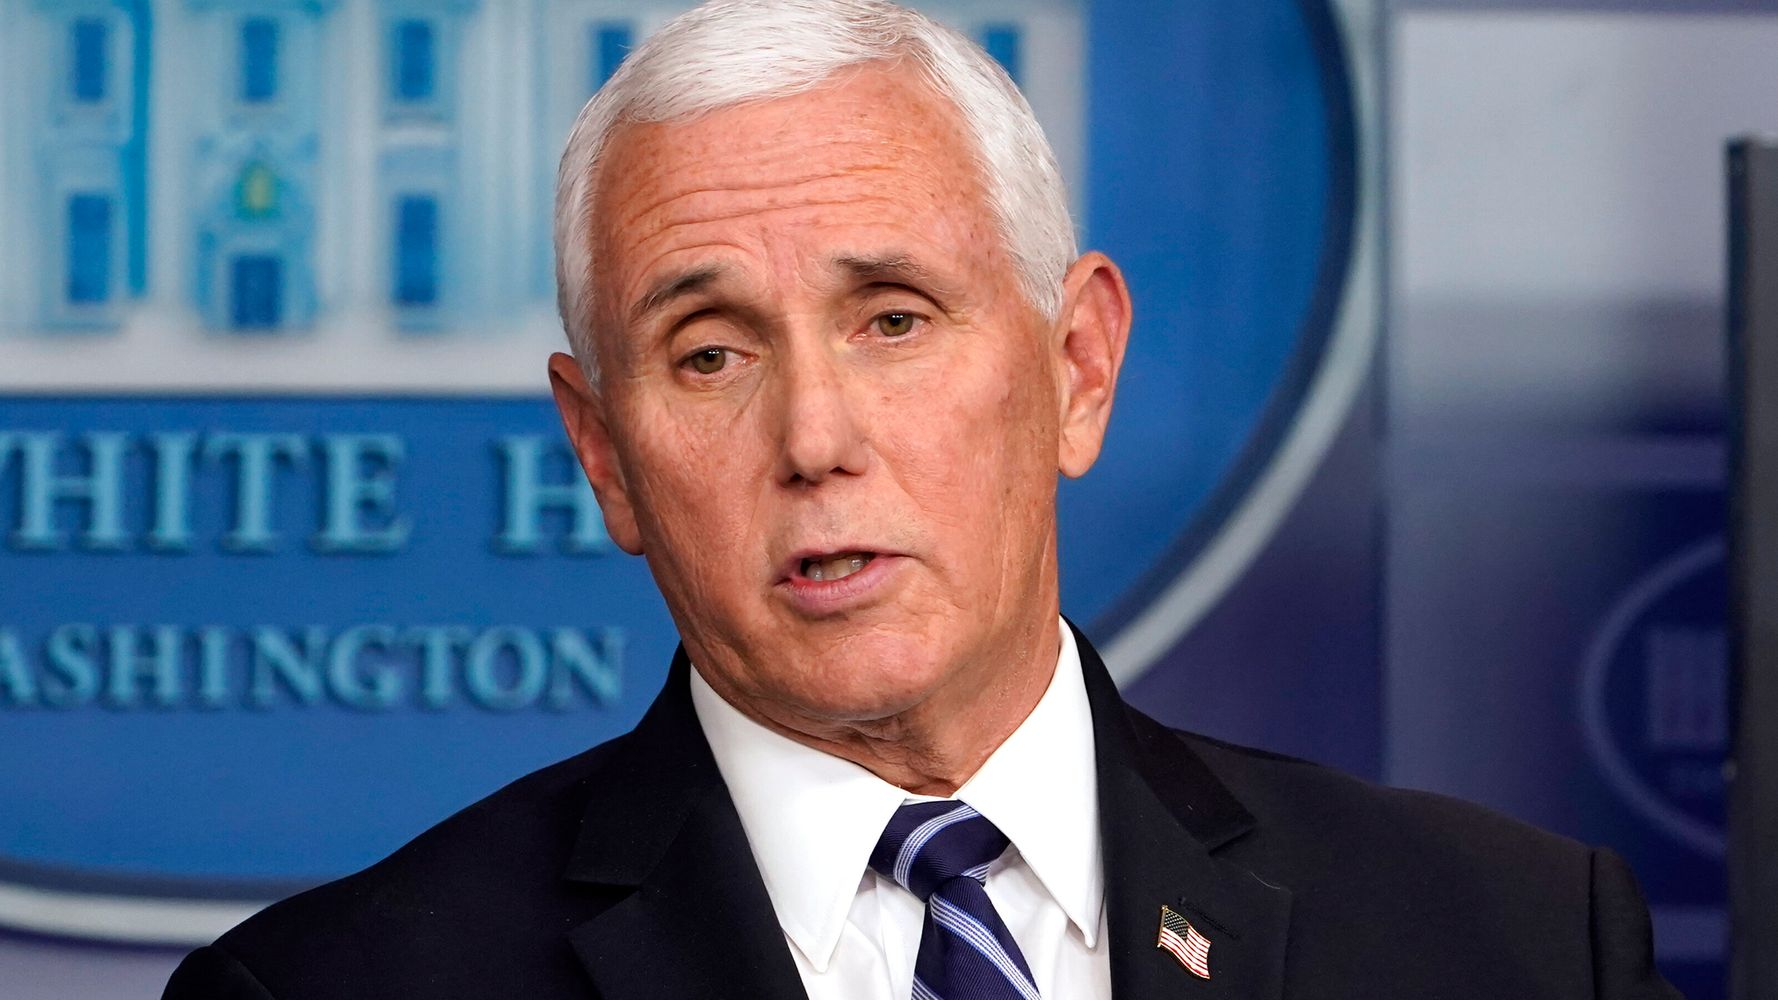 People Aren't Buying Mike Pence's Latest Comments About COVID-19 Victims